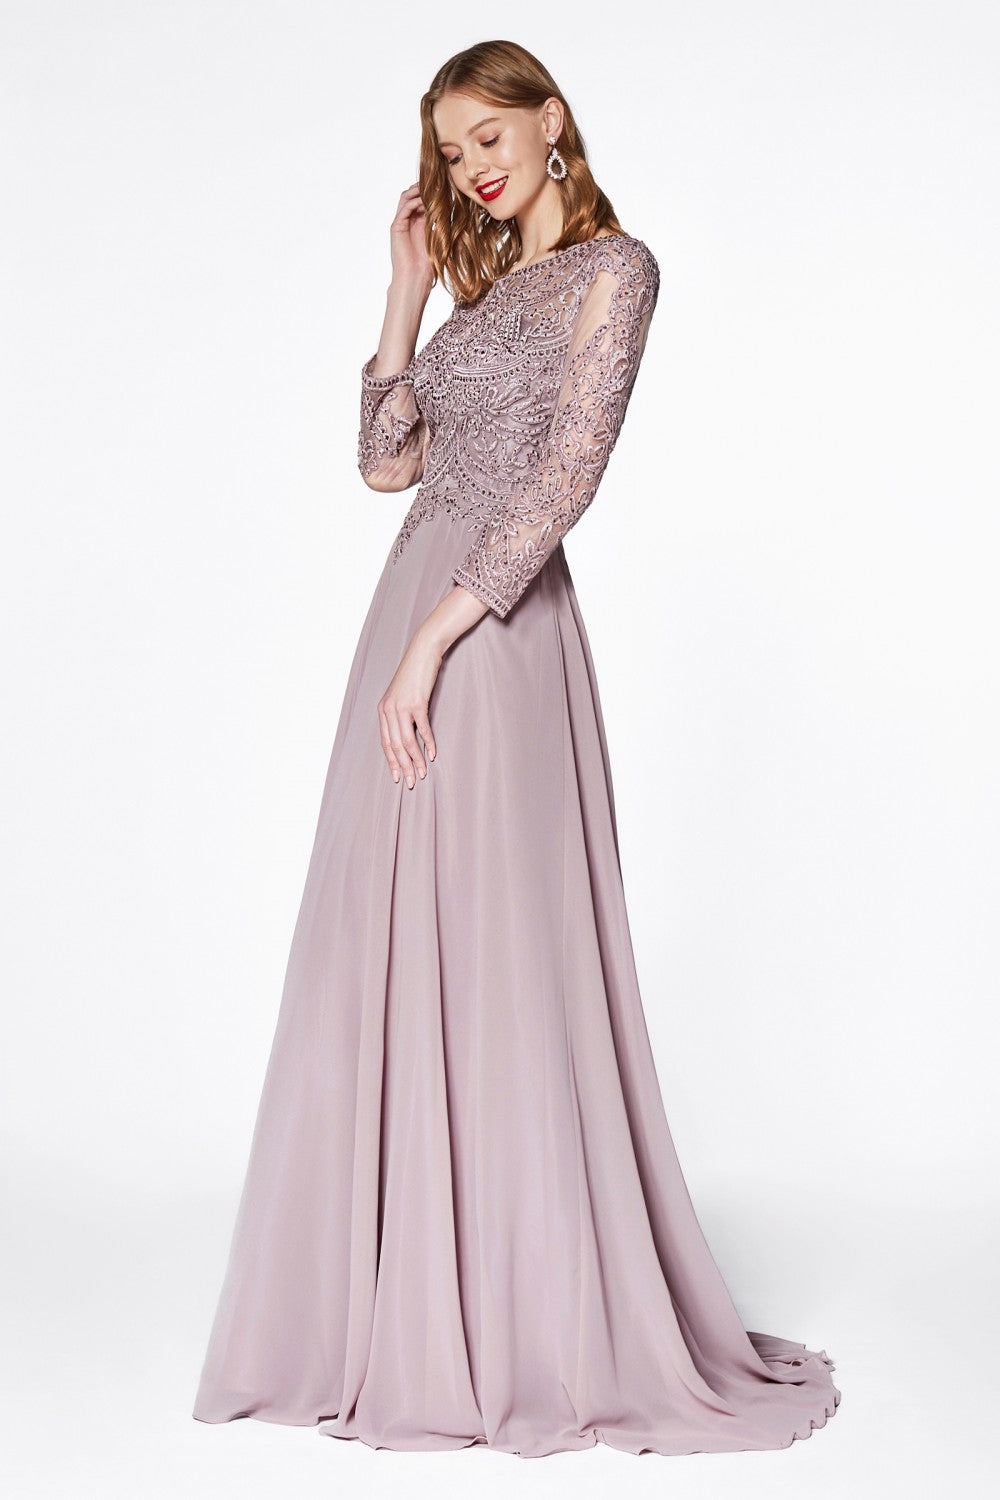 Flowy A-Line Chiffon Three-Quarter Sleeve Gown With Closed Back And Lace Detailed Bodice